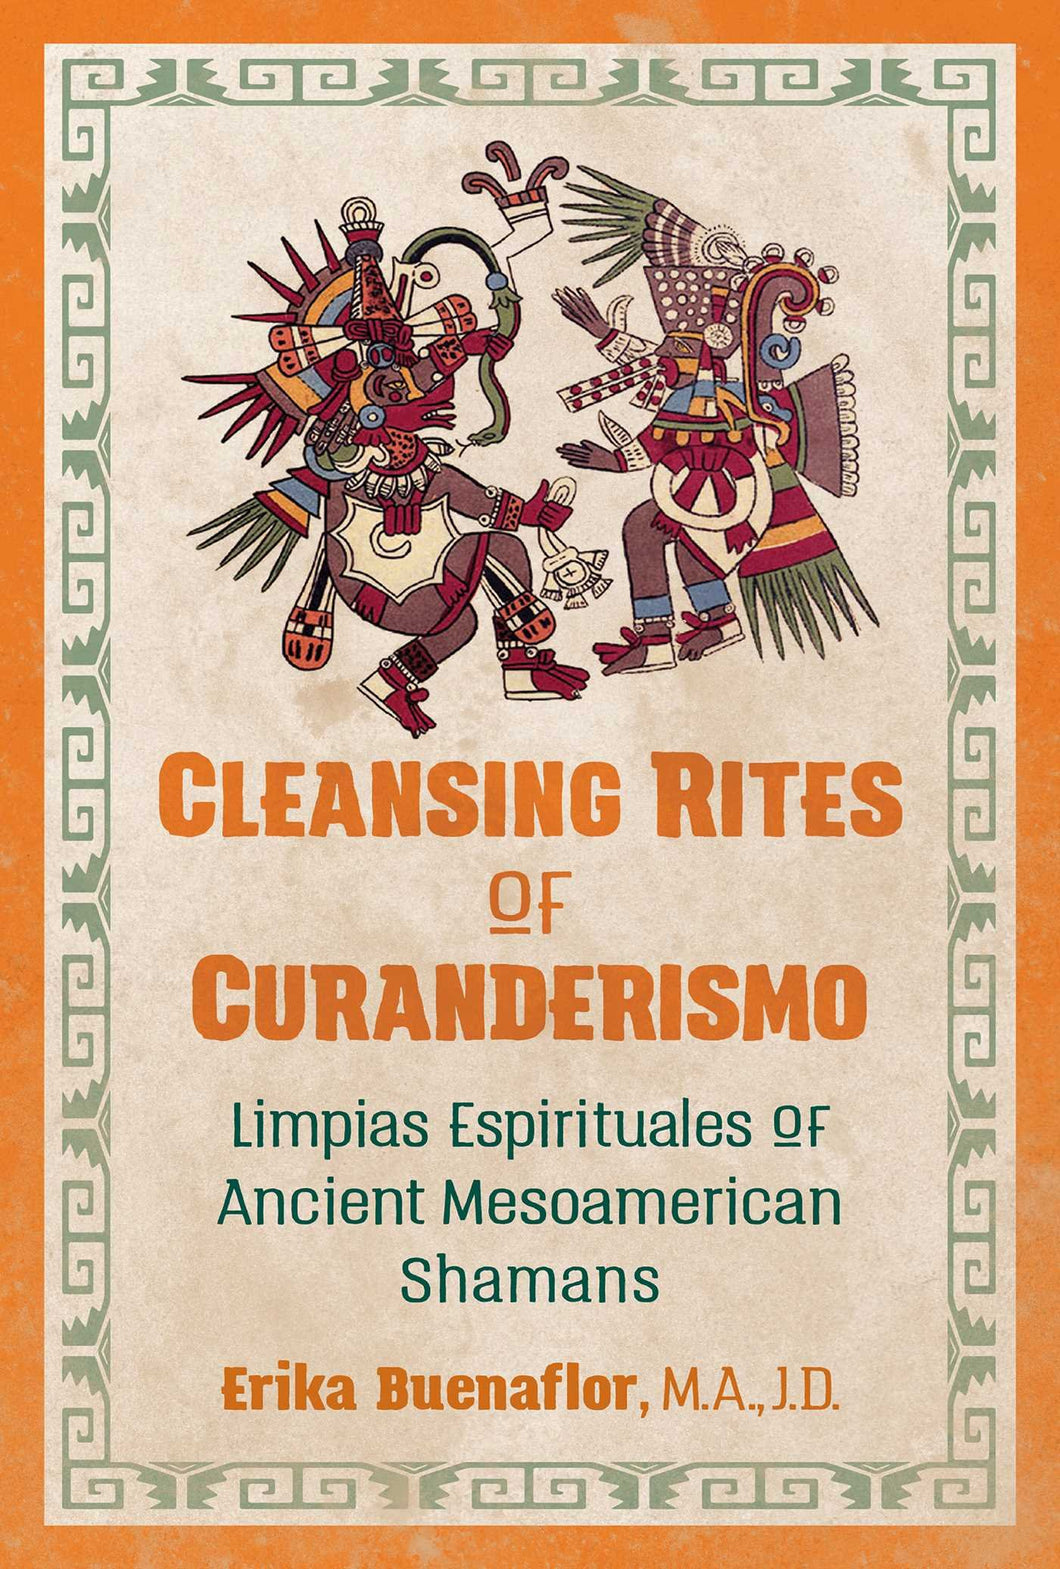 Cleansing Rites of Curanderismo: Limpias Espirituales of Ancient Mesoamerican Shamans by Erika Buenaflor